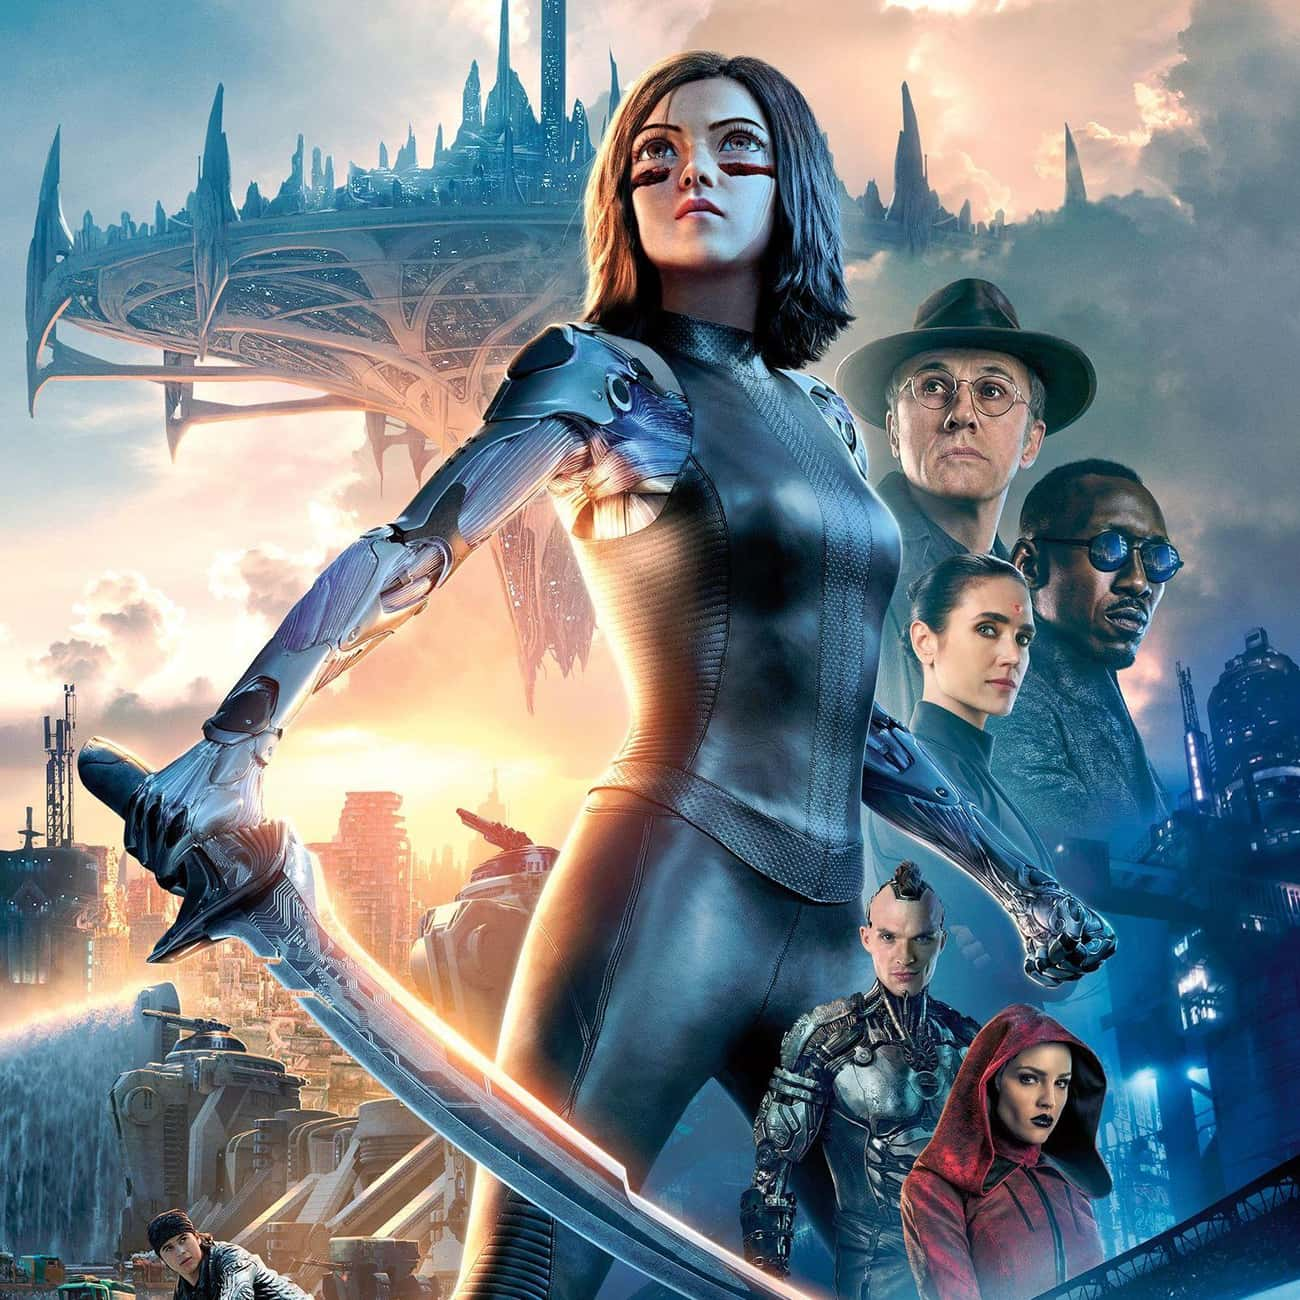 Alita: Battle Angel is listed (or ranked) 4 on the list The Best New Sci-Fi Movies of the Last Few Years